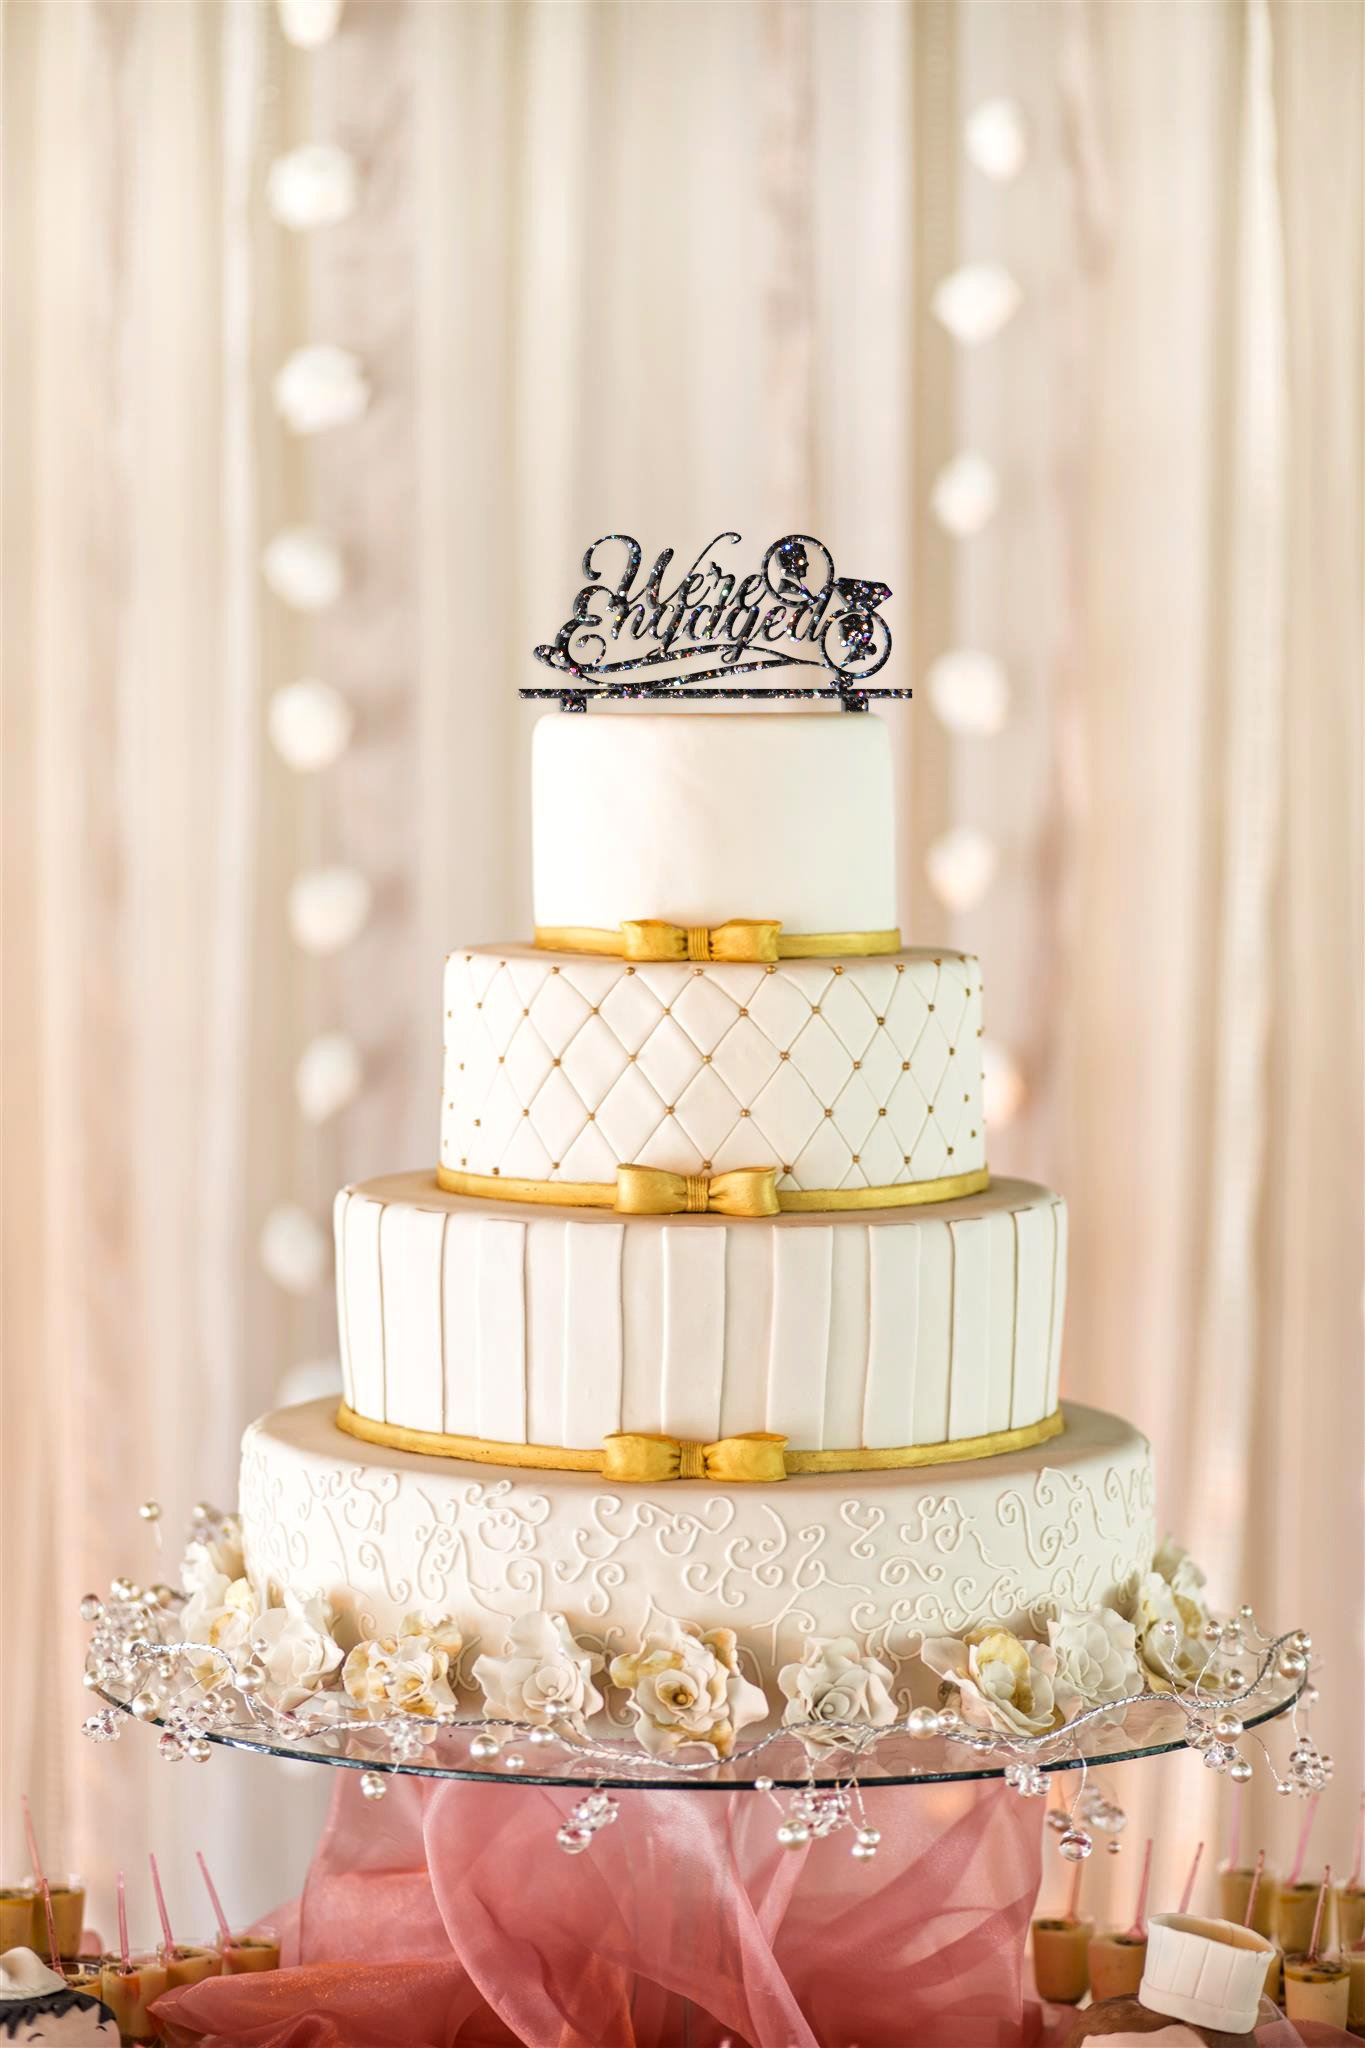 We're Engaged Cake Topper, Engagement Cake Topper, Engagement Party Cake Topper, Gold Glitter Cake Topper, Engagement Decor (15'', Glitter Midnight) by American Sign Letters